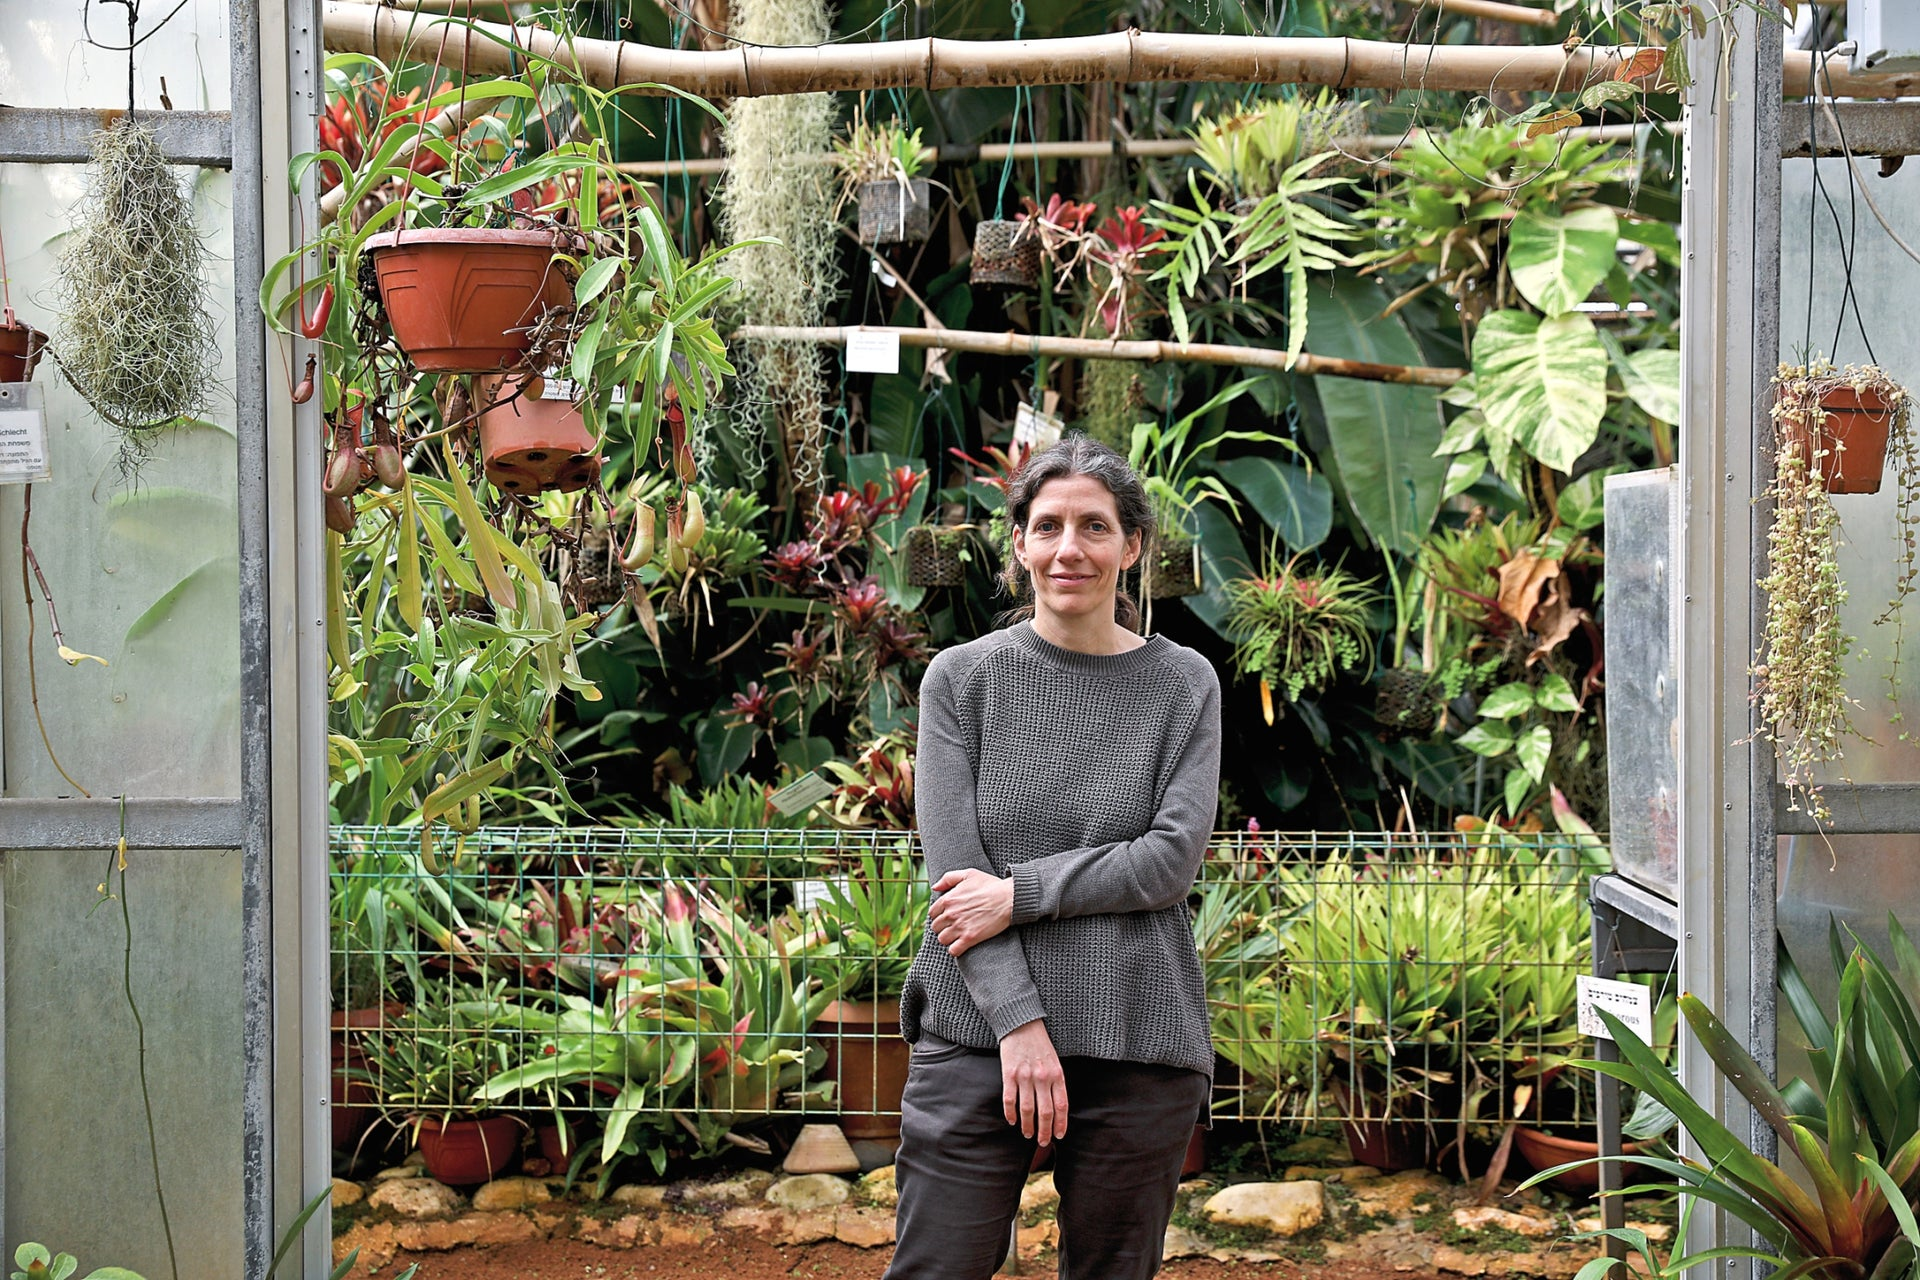 Prof. Lilach Hadany, from Tel Aviv University's Department of Molecular Biology and Ecology of Plants.